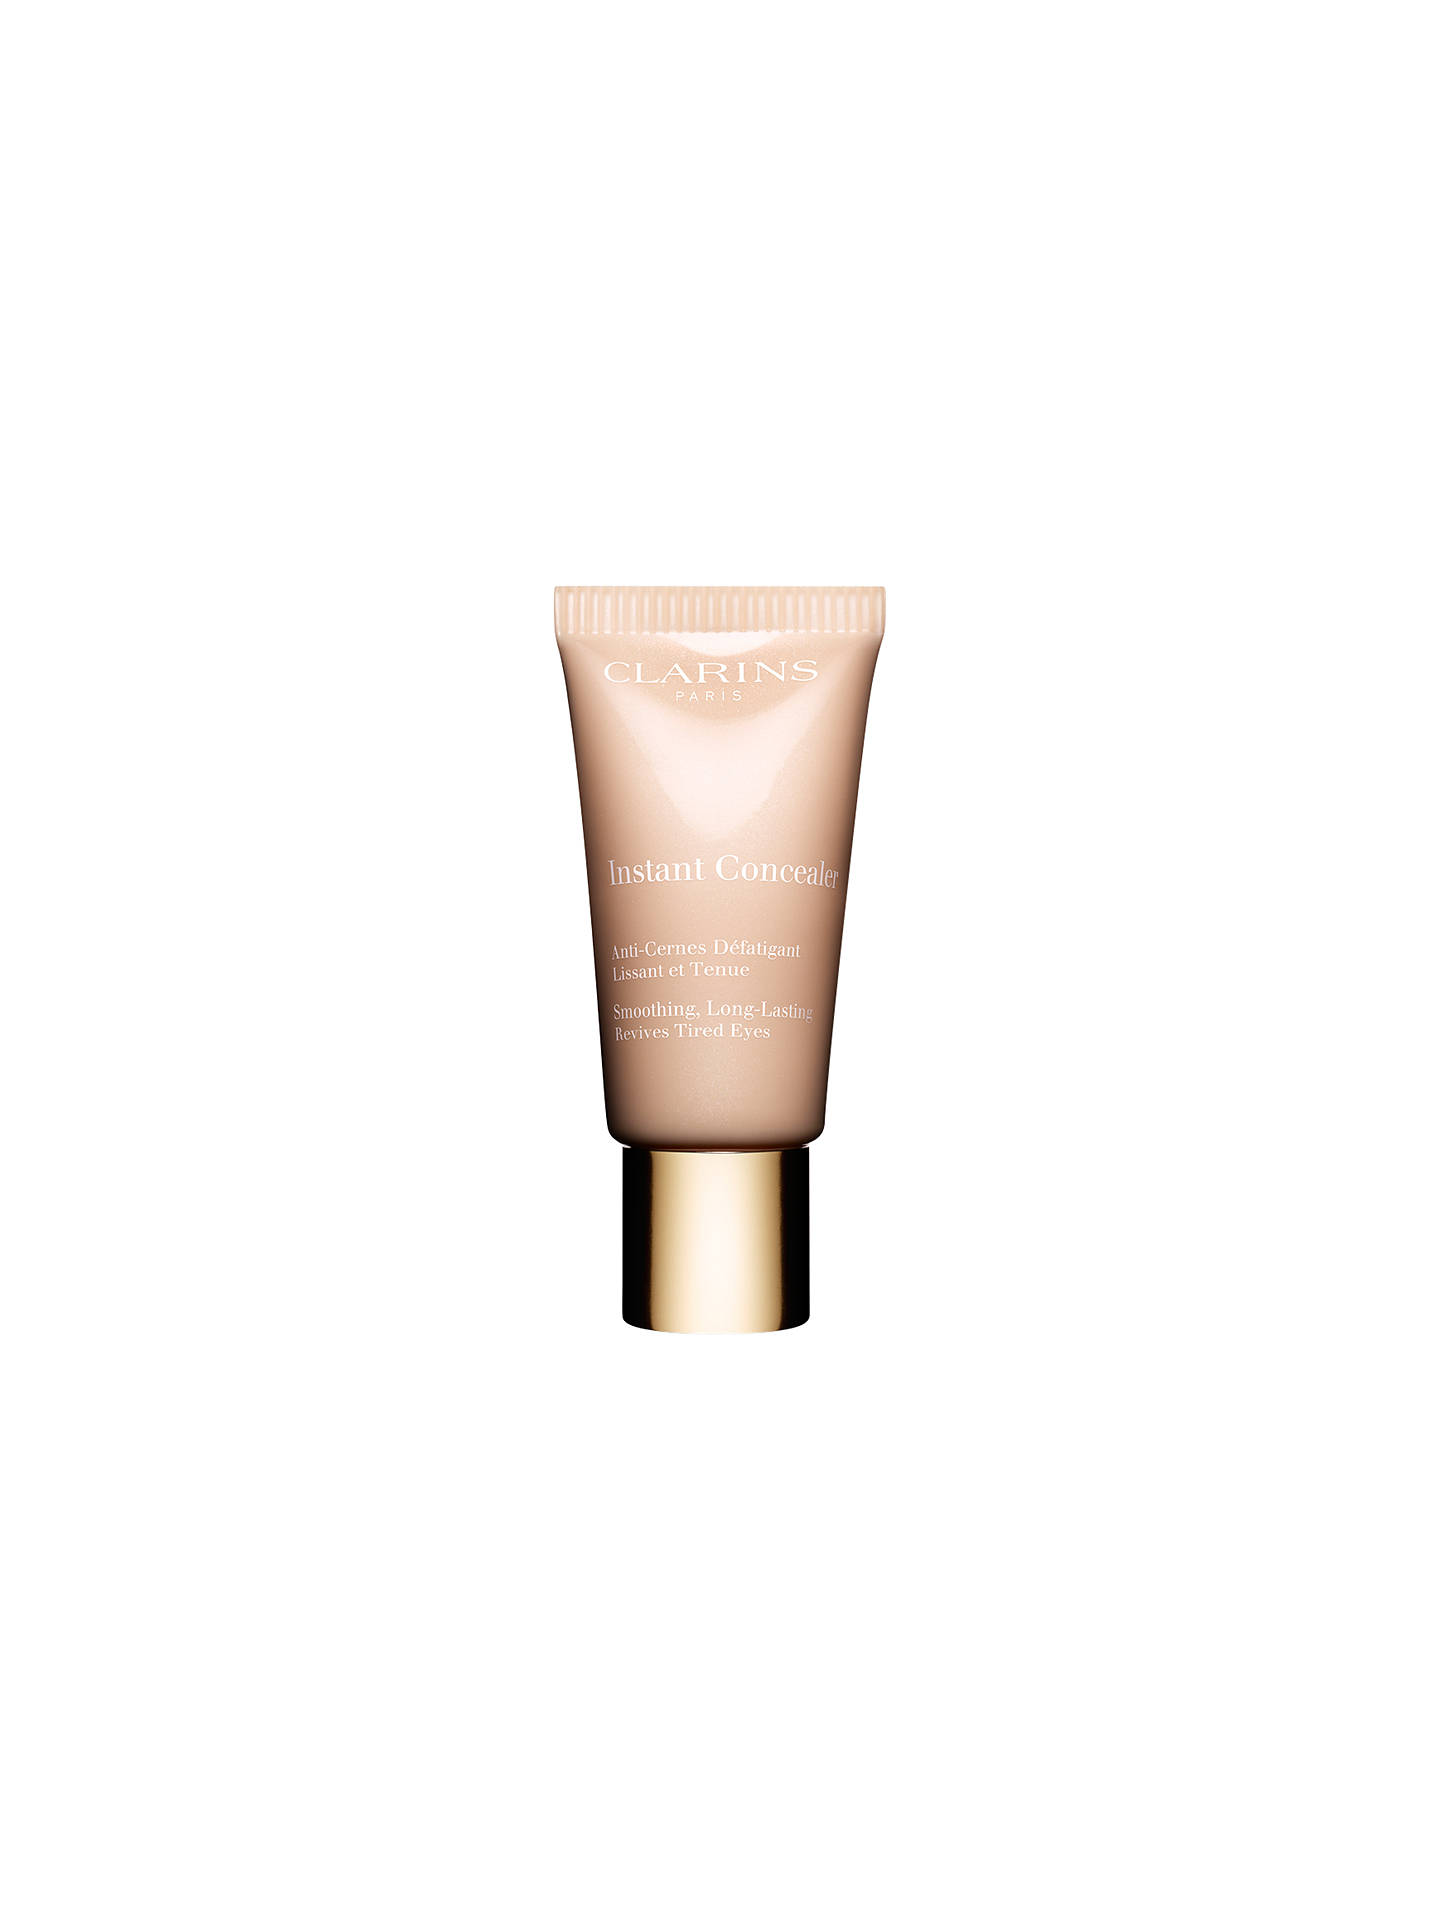 Buy Clarins Instant Concealer, Shade 03, 15ml Online at johnlewis.com